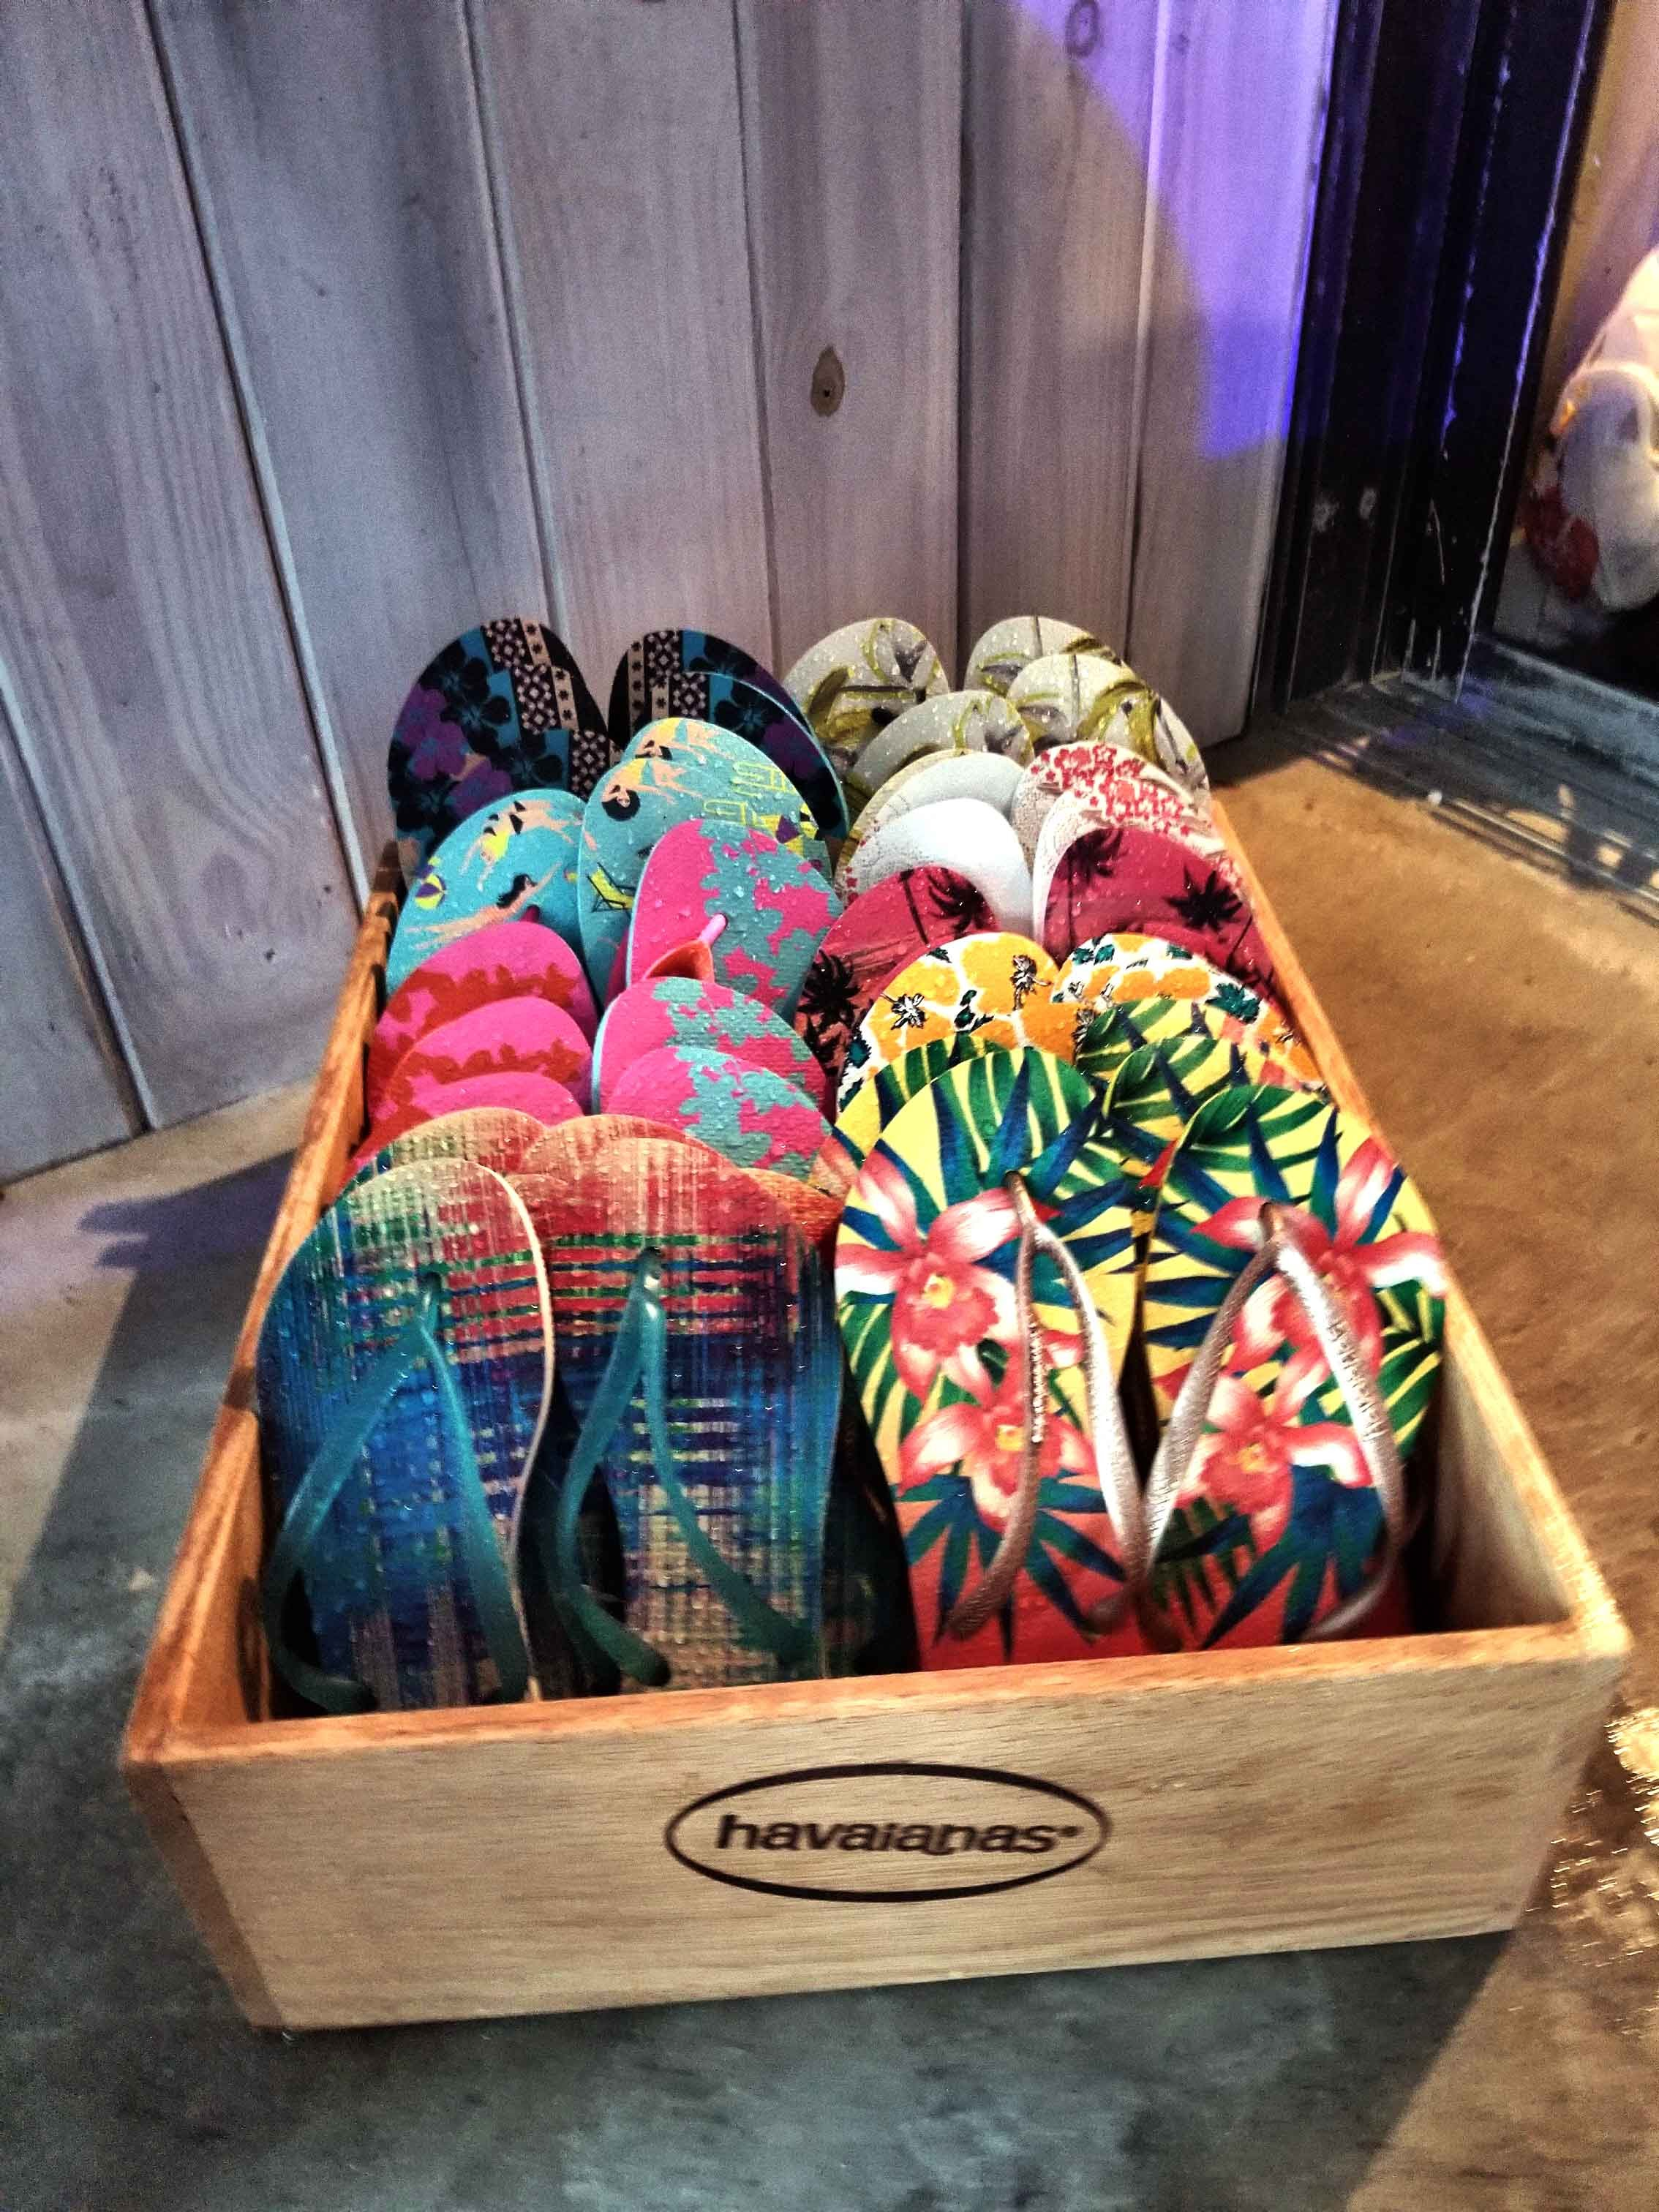 A Night in Rio with Havaianas